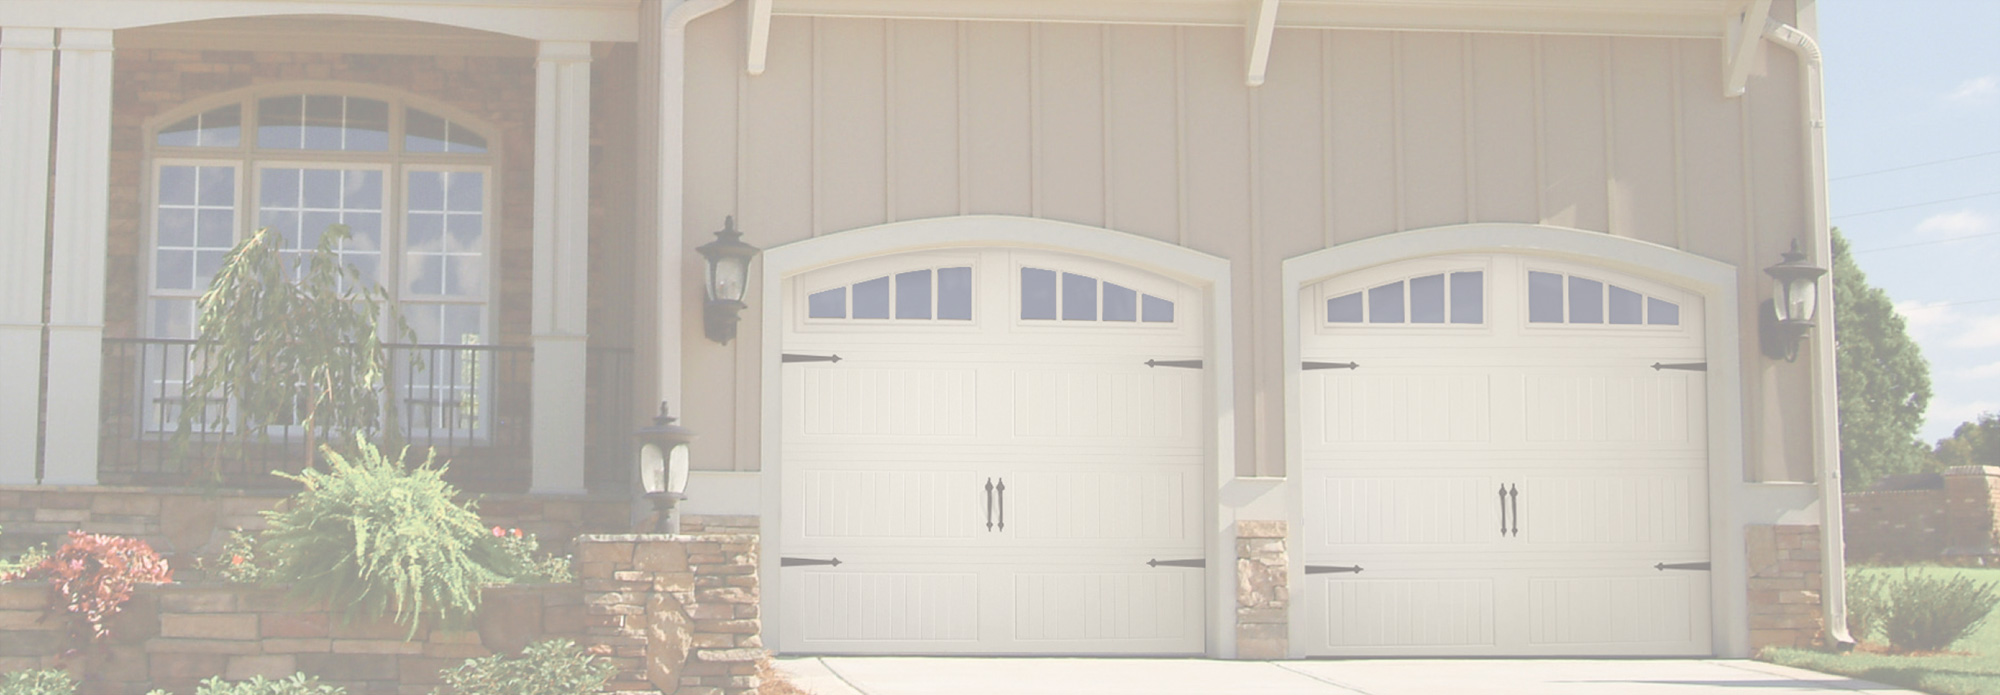 Emergency Garage Door Repair Denver 4k Wallpapers 2018